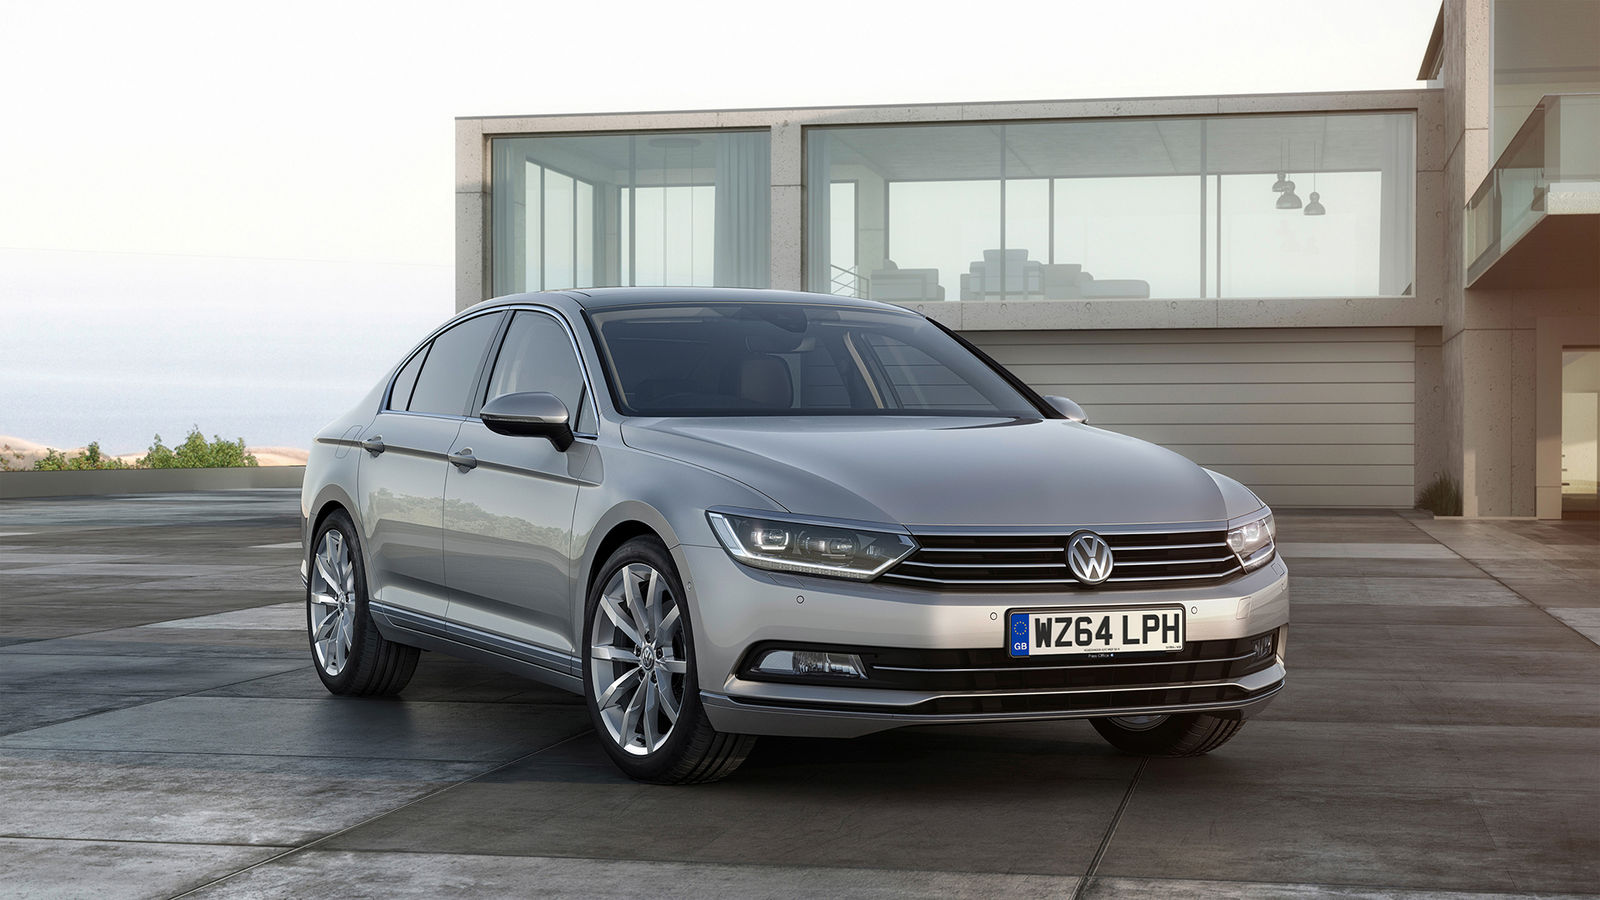 2015 volkswagen passat uk prices carwow. Black Bedroom Furniture Sets. Home Design Ideas